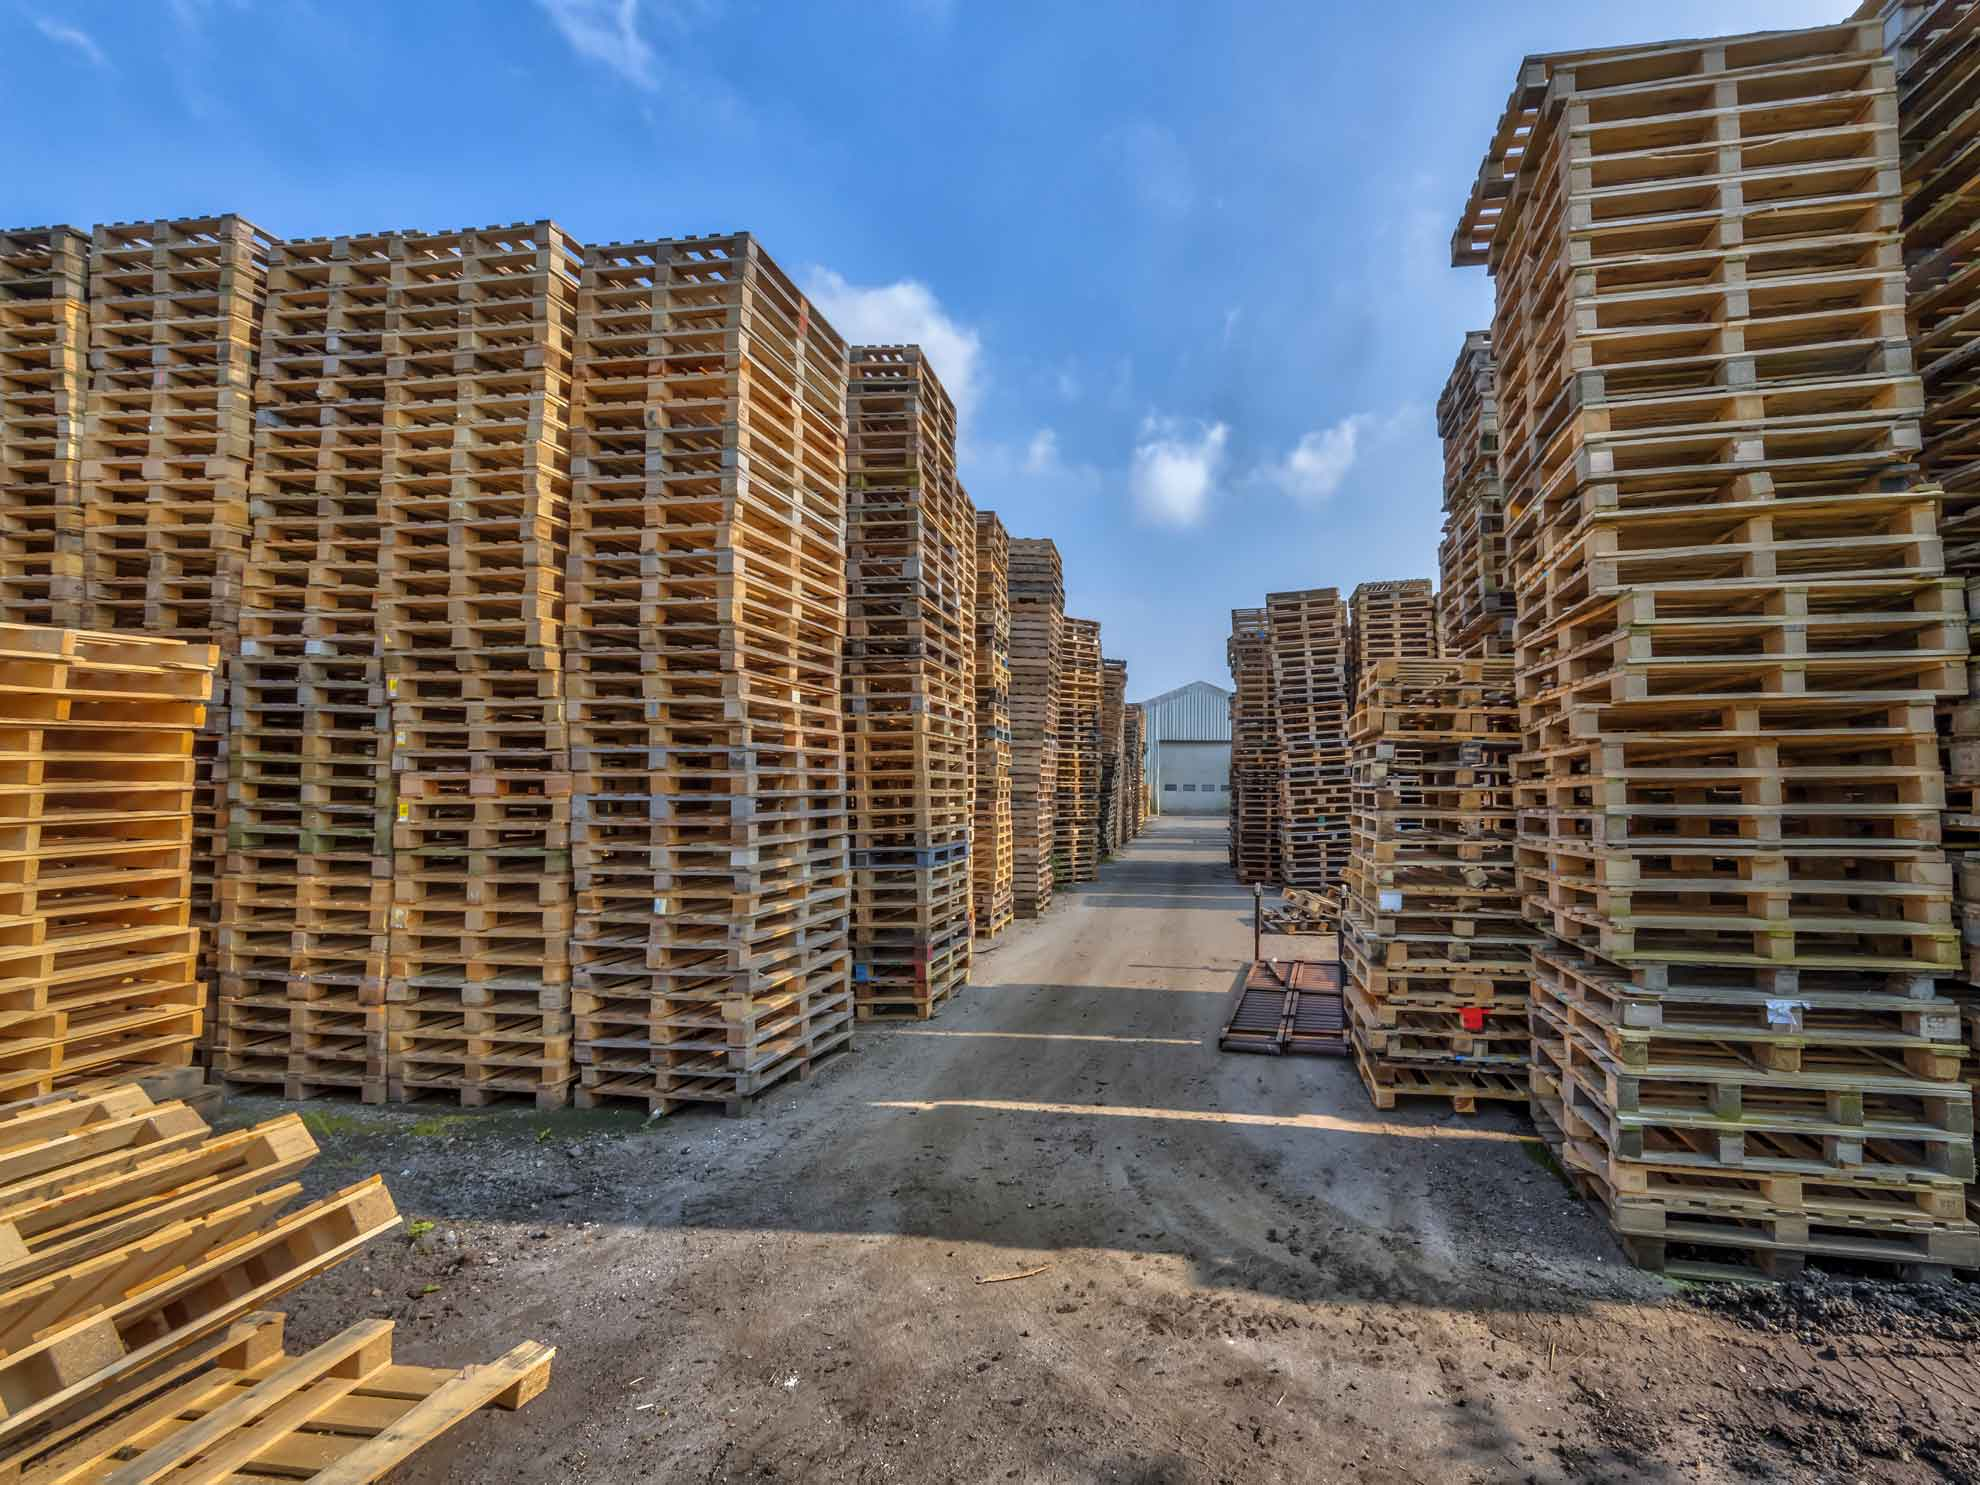 Pallets-Miami-Opa-Locka-Pallets